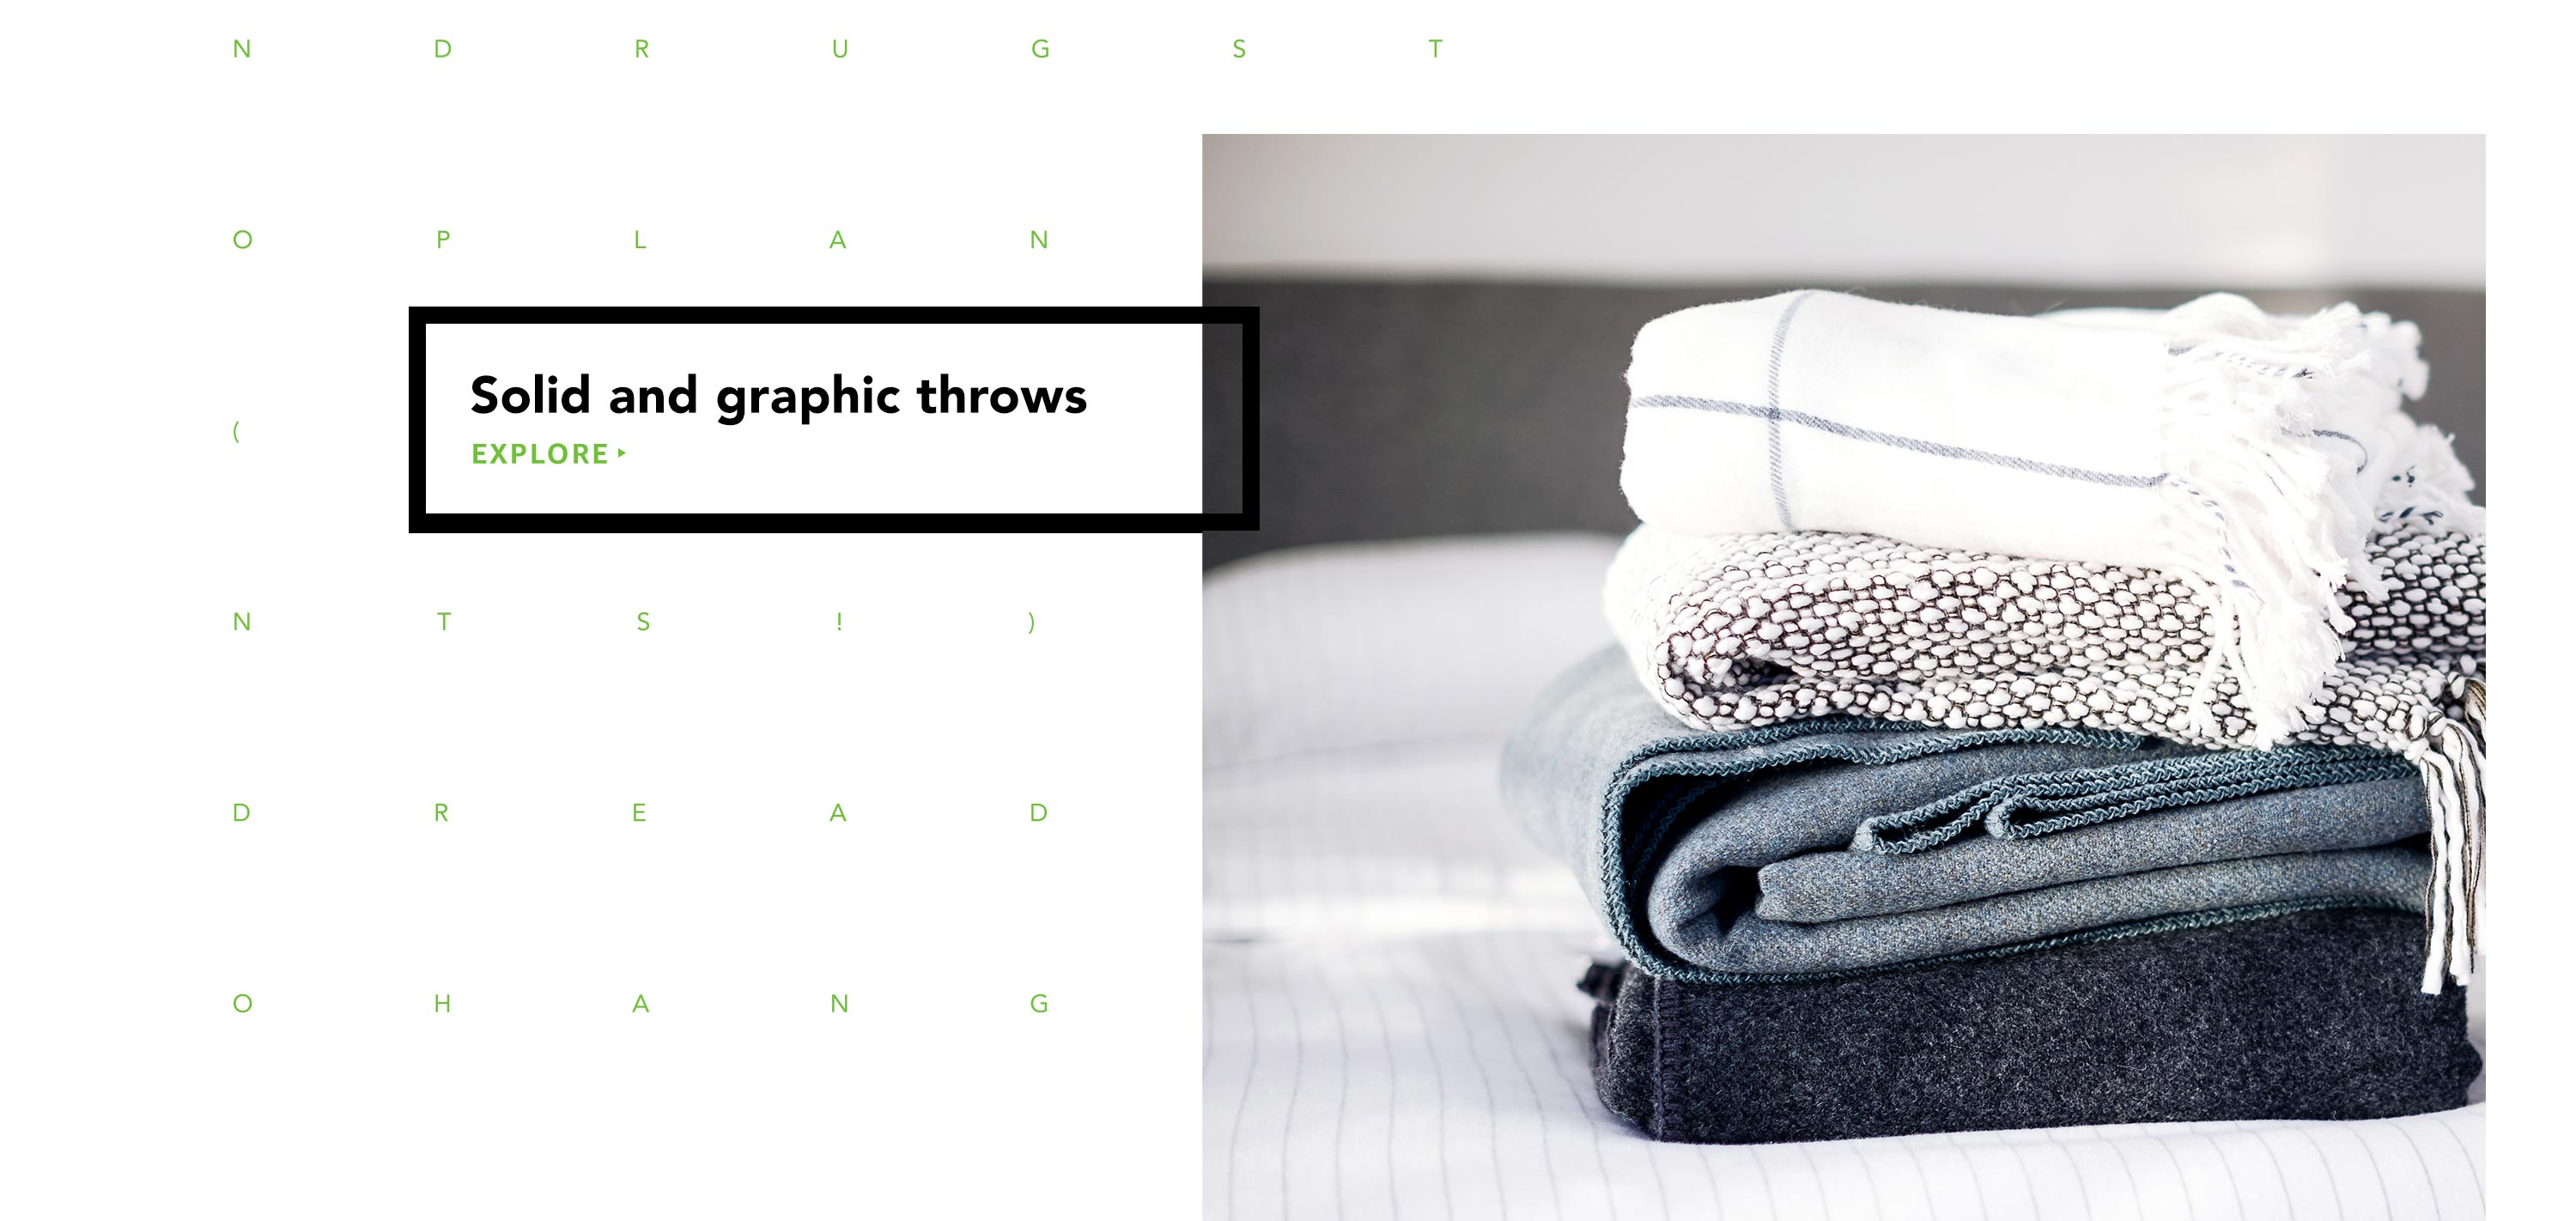 Solid and graphic throws